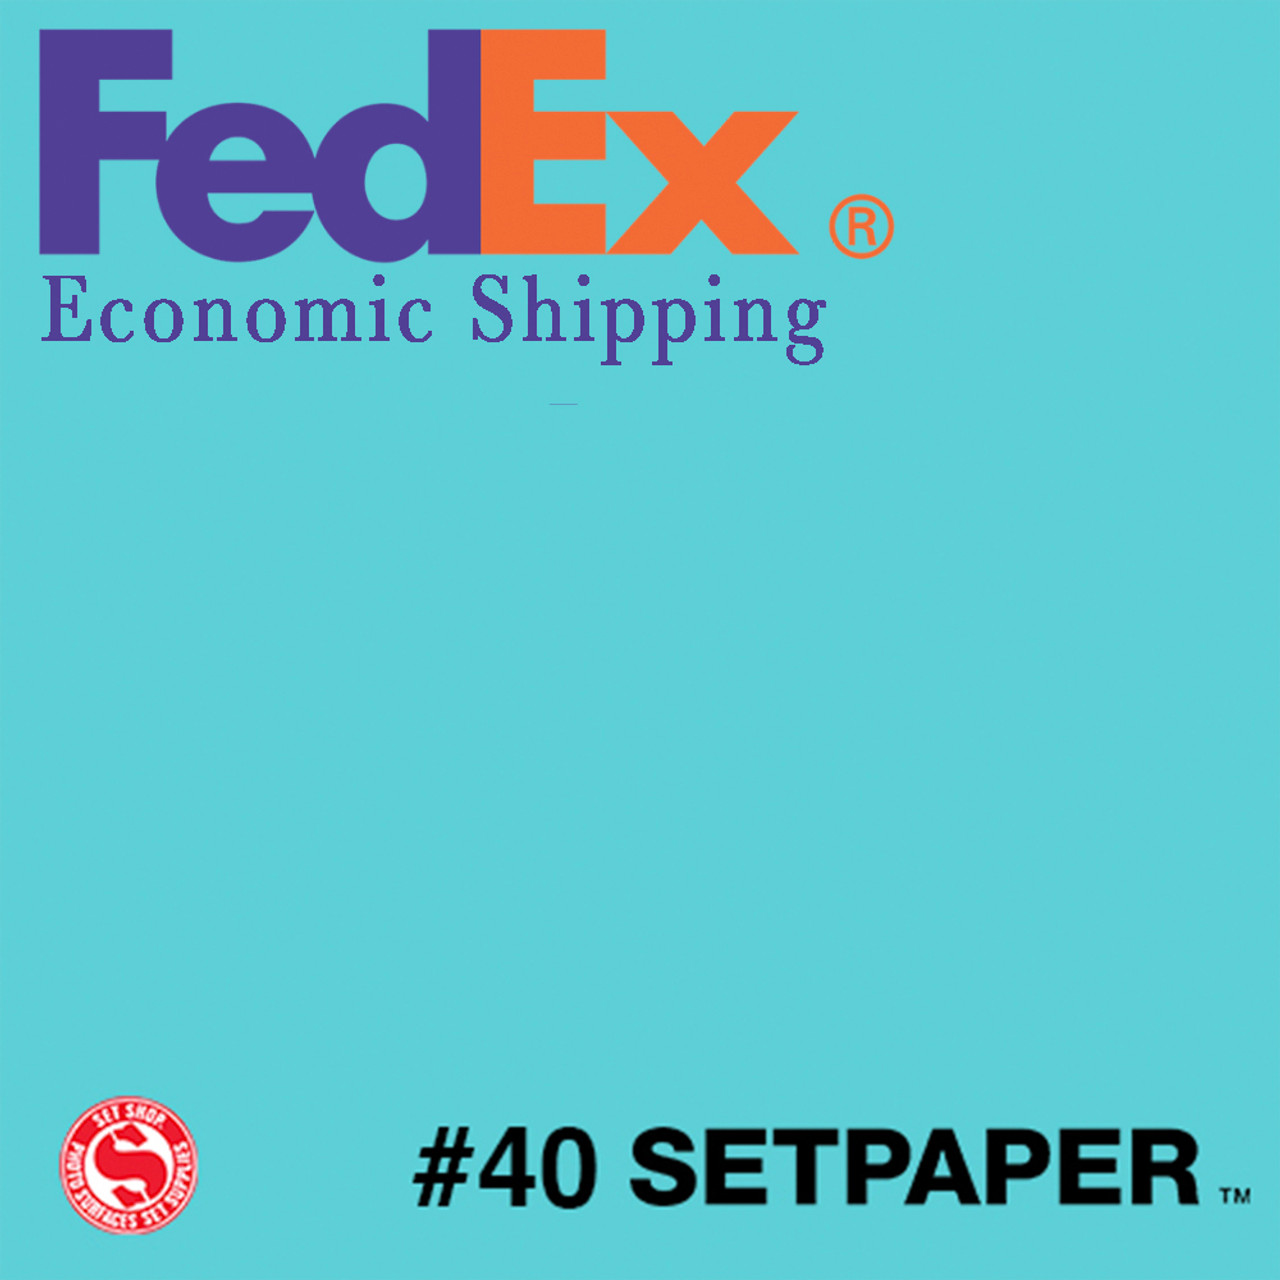 "(ECONOMIC SHIPPING) SETPAPER - AQUA BLUE 48"" x 36' (1.3 x 11m)"